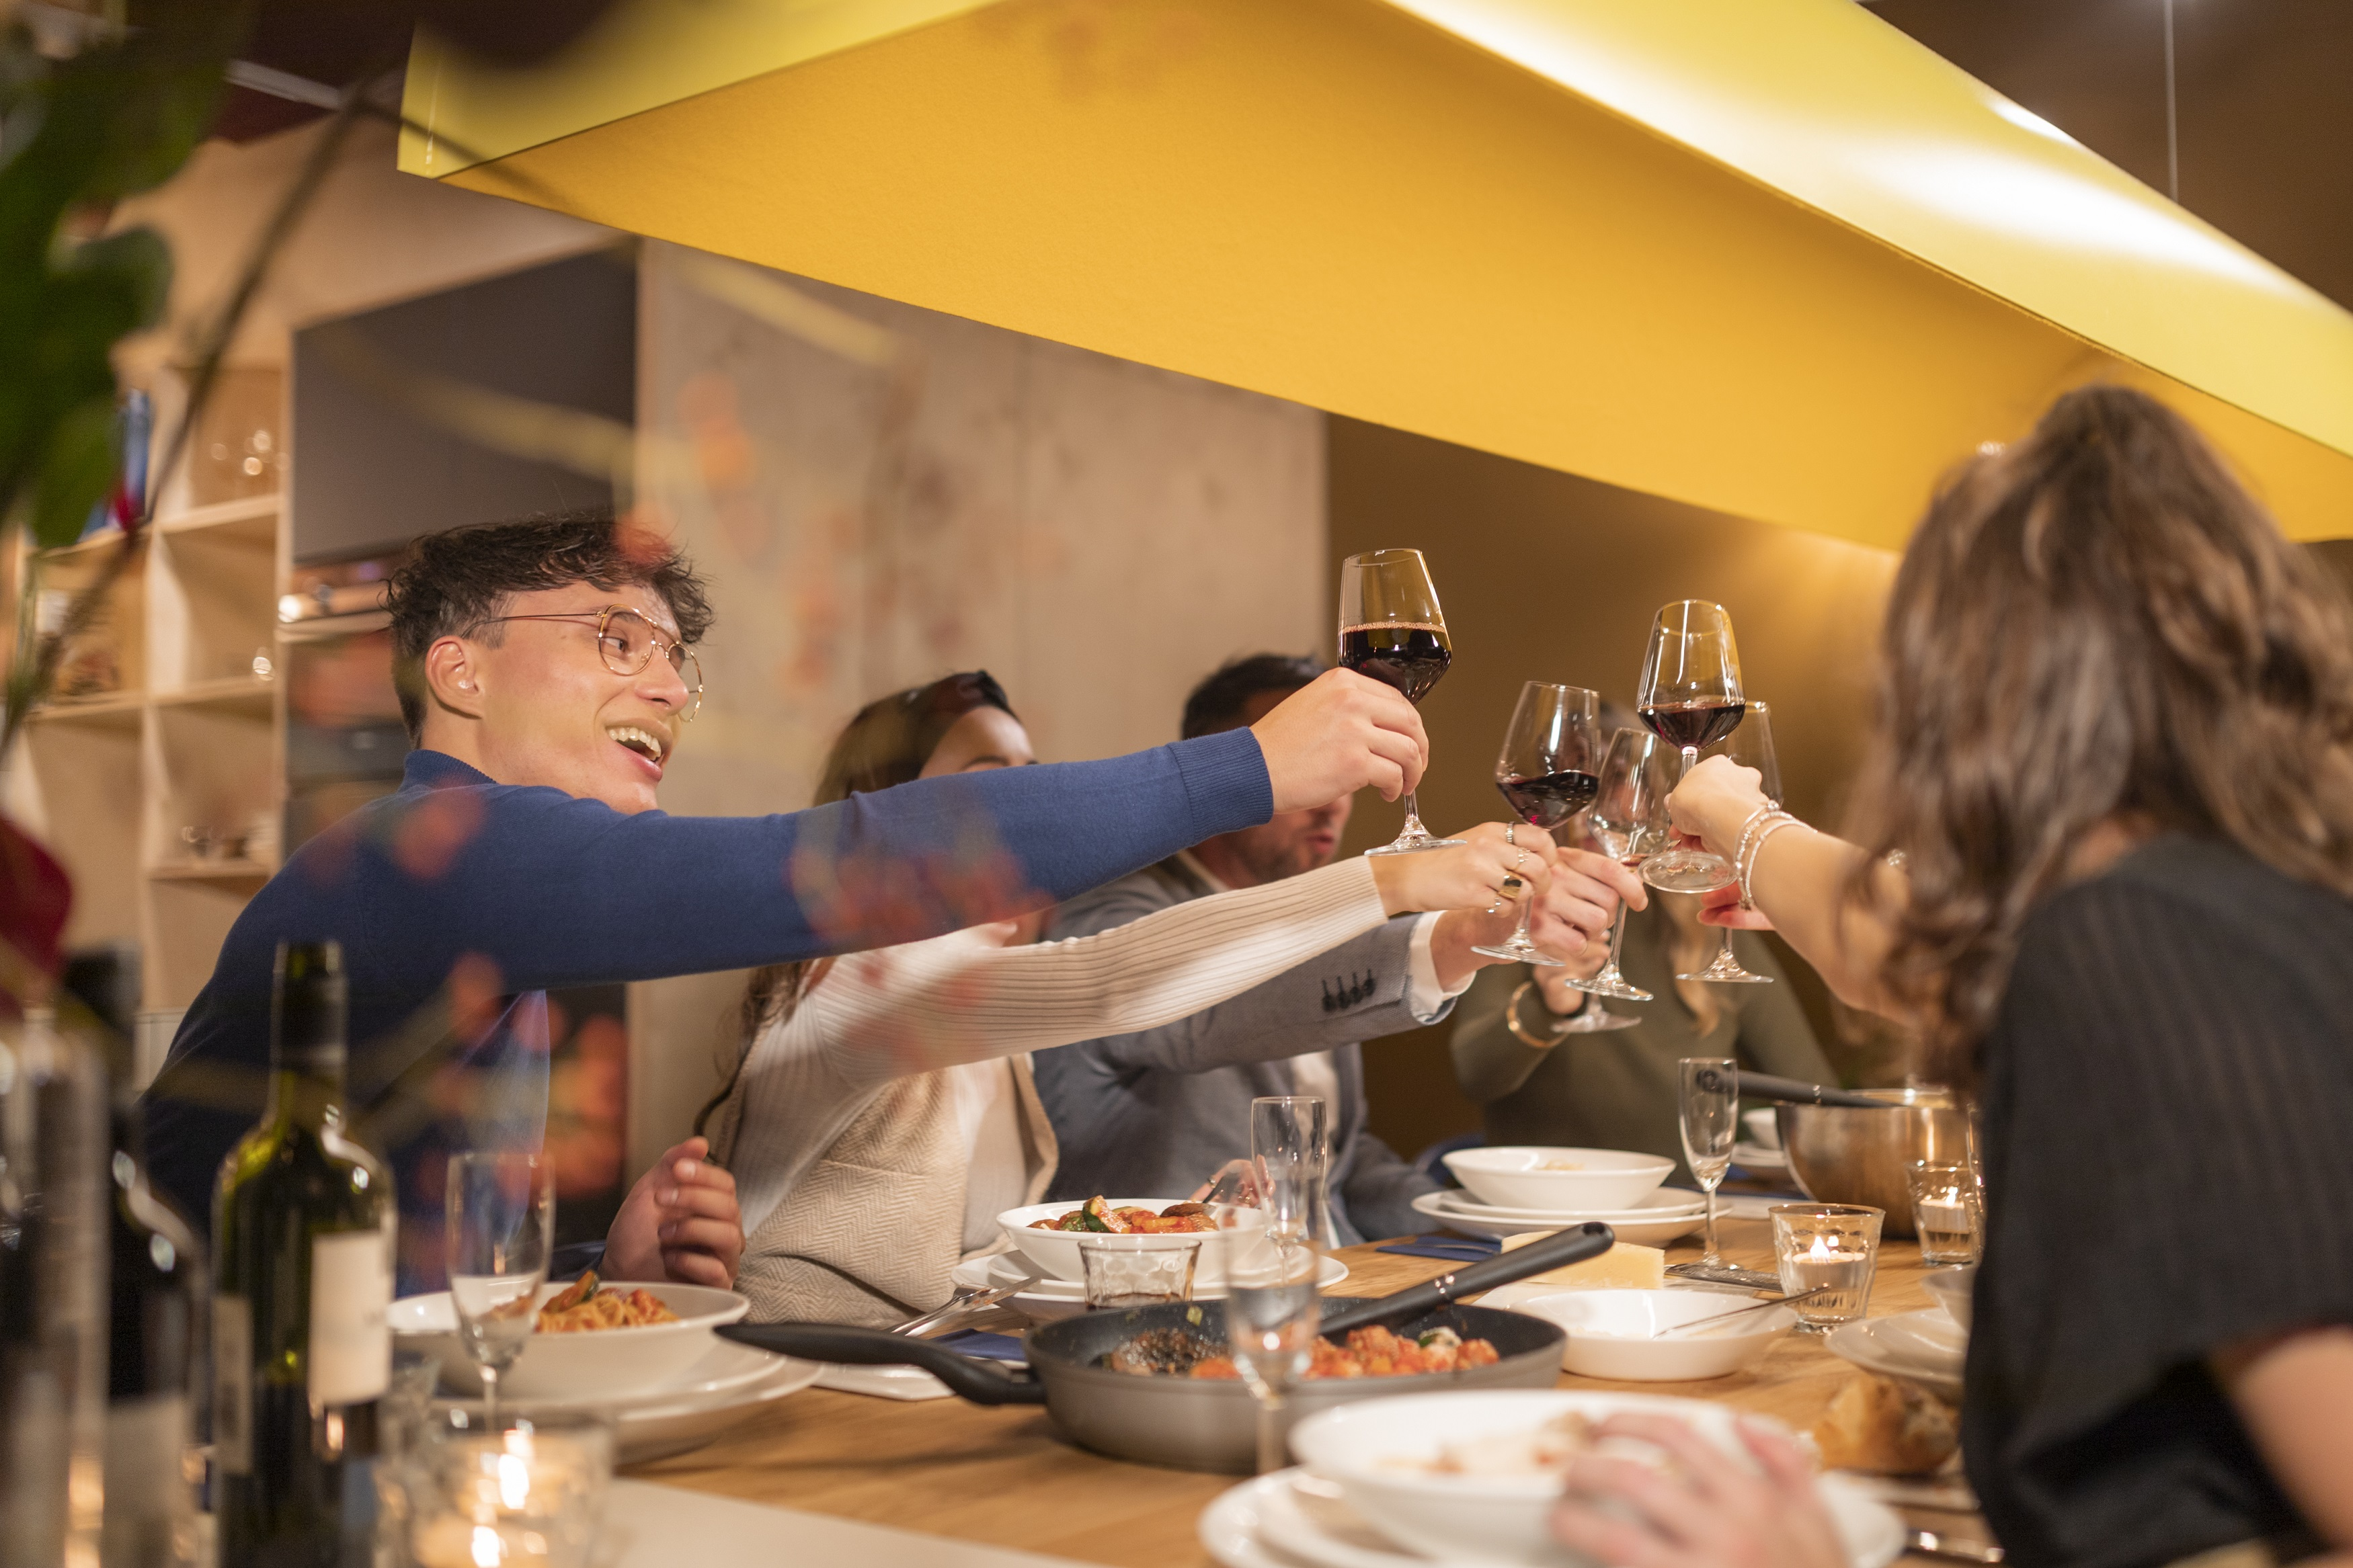 Residents cheering around the dinner table at OurDomain Amsterdam Diemen